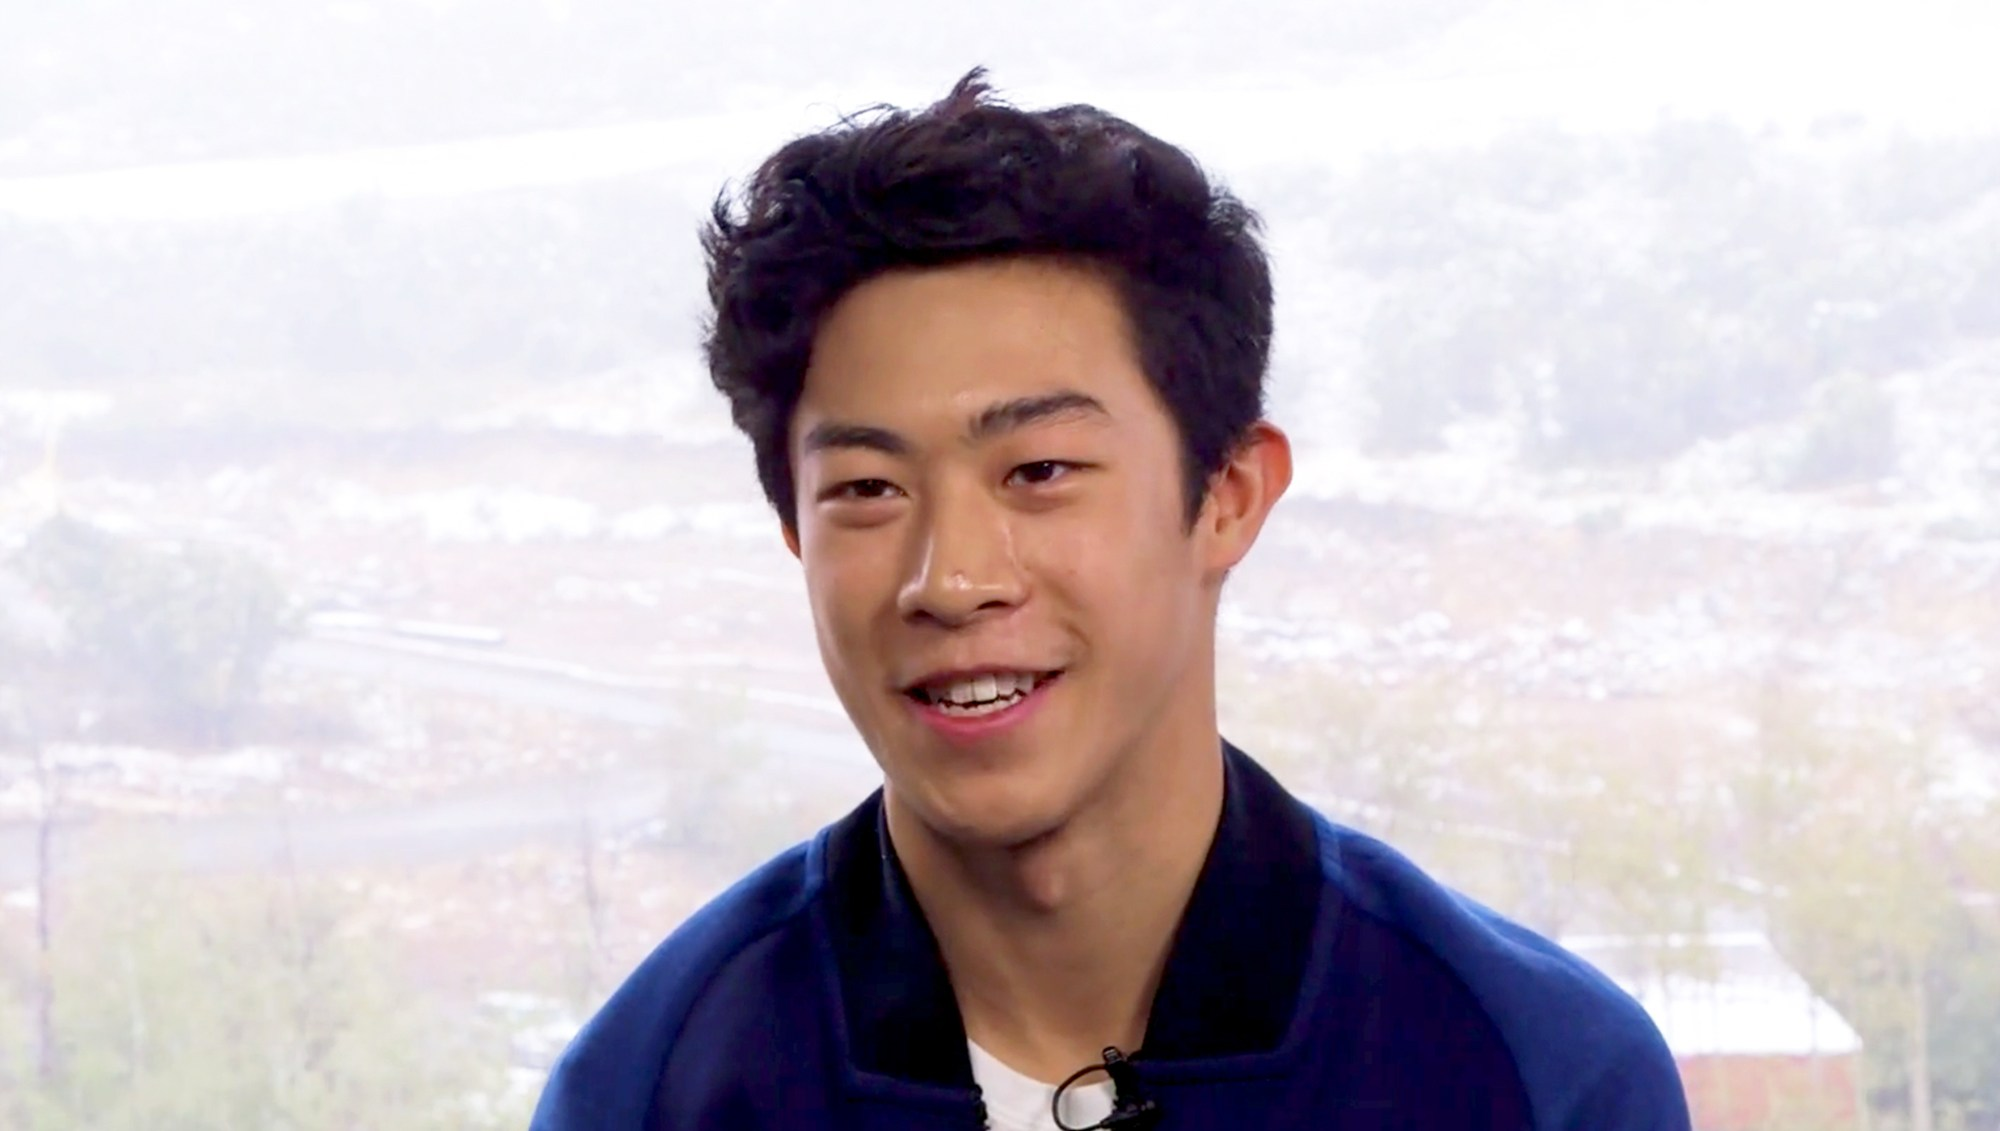 Olympic figure skater Nathan Chen